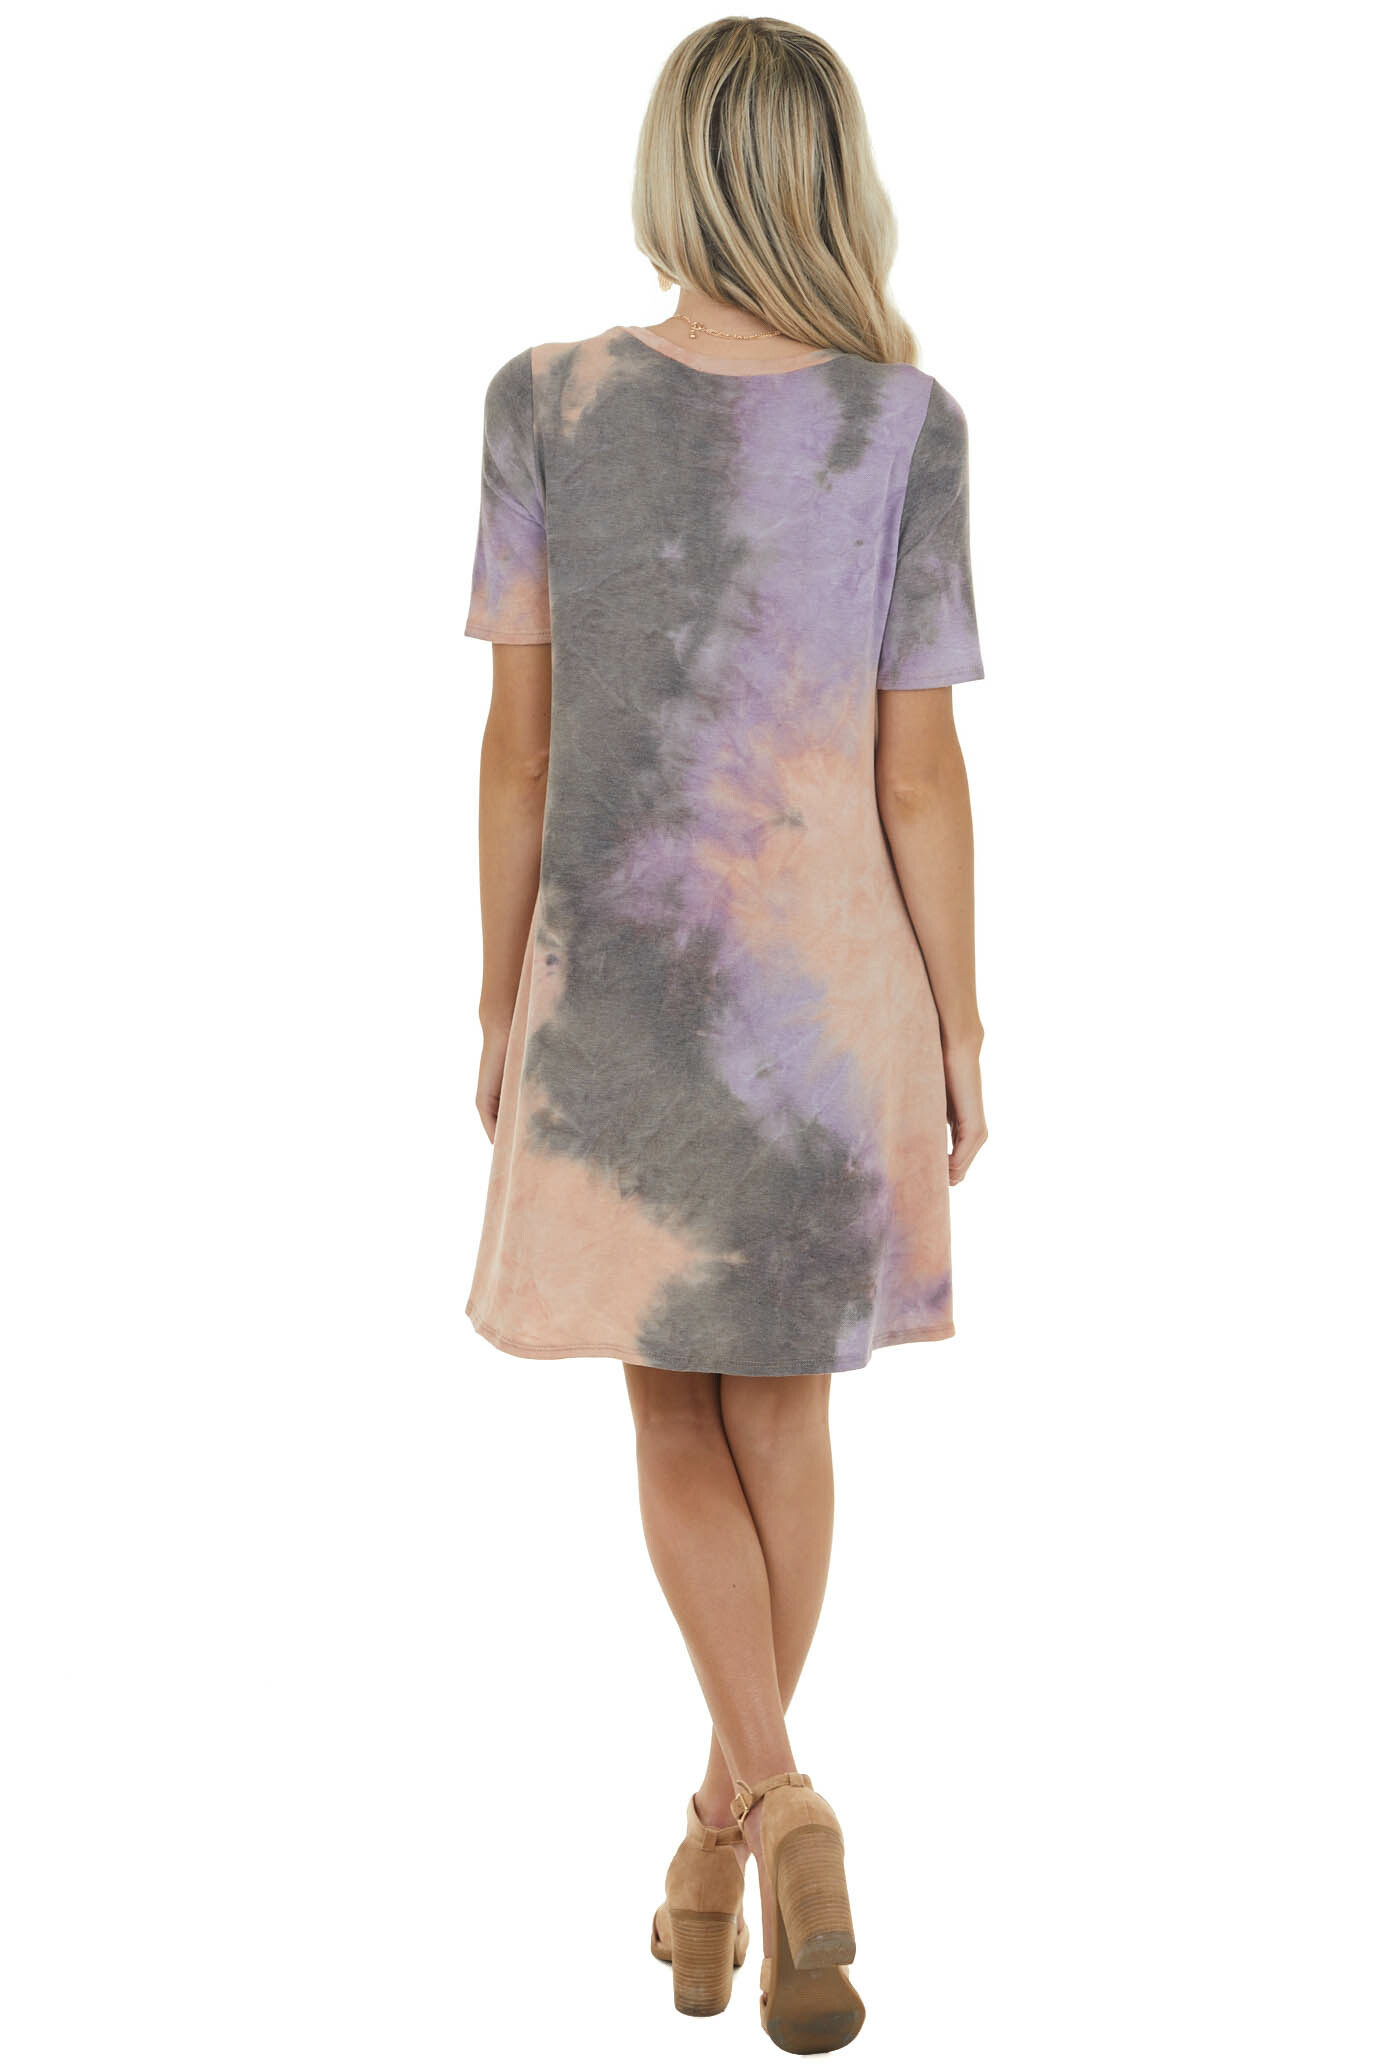 Peach and Lavender Tie Dye Dress with Side Pockets